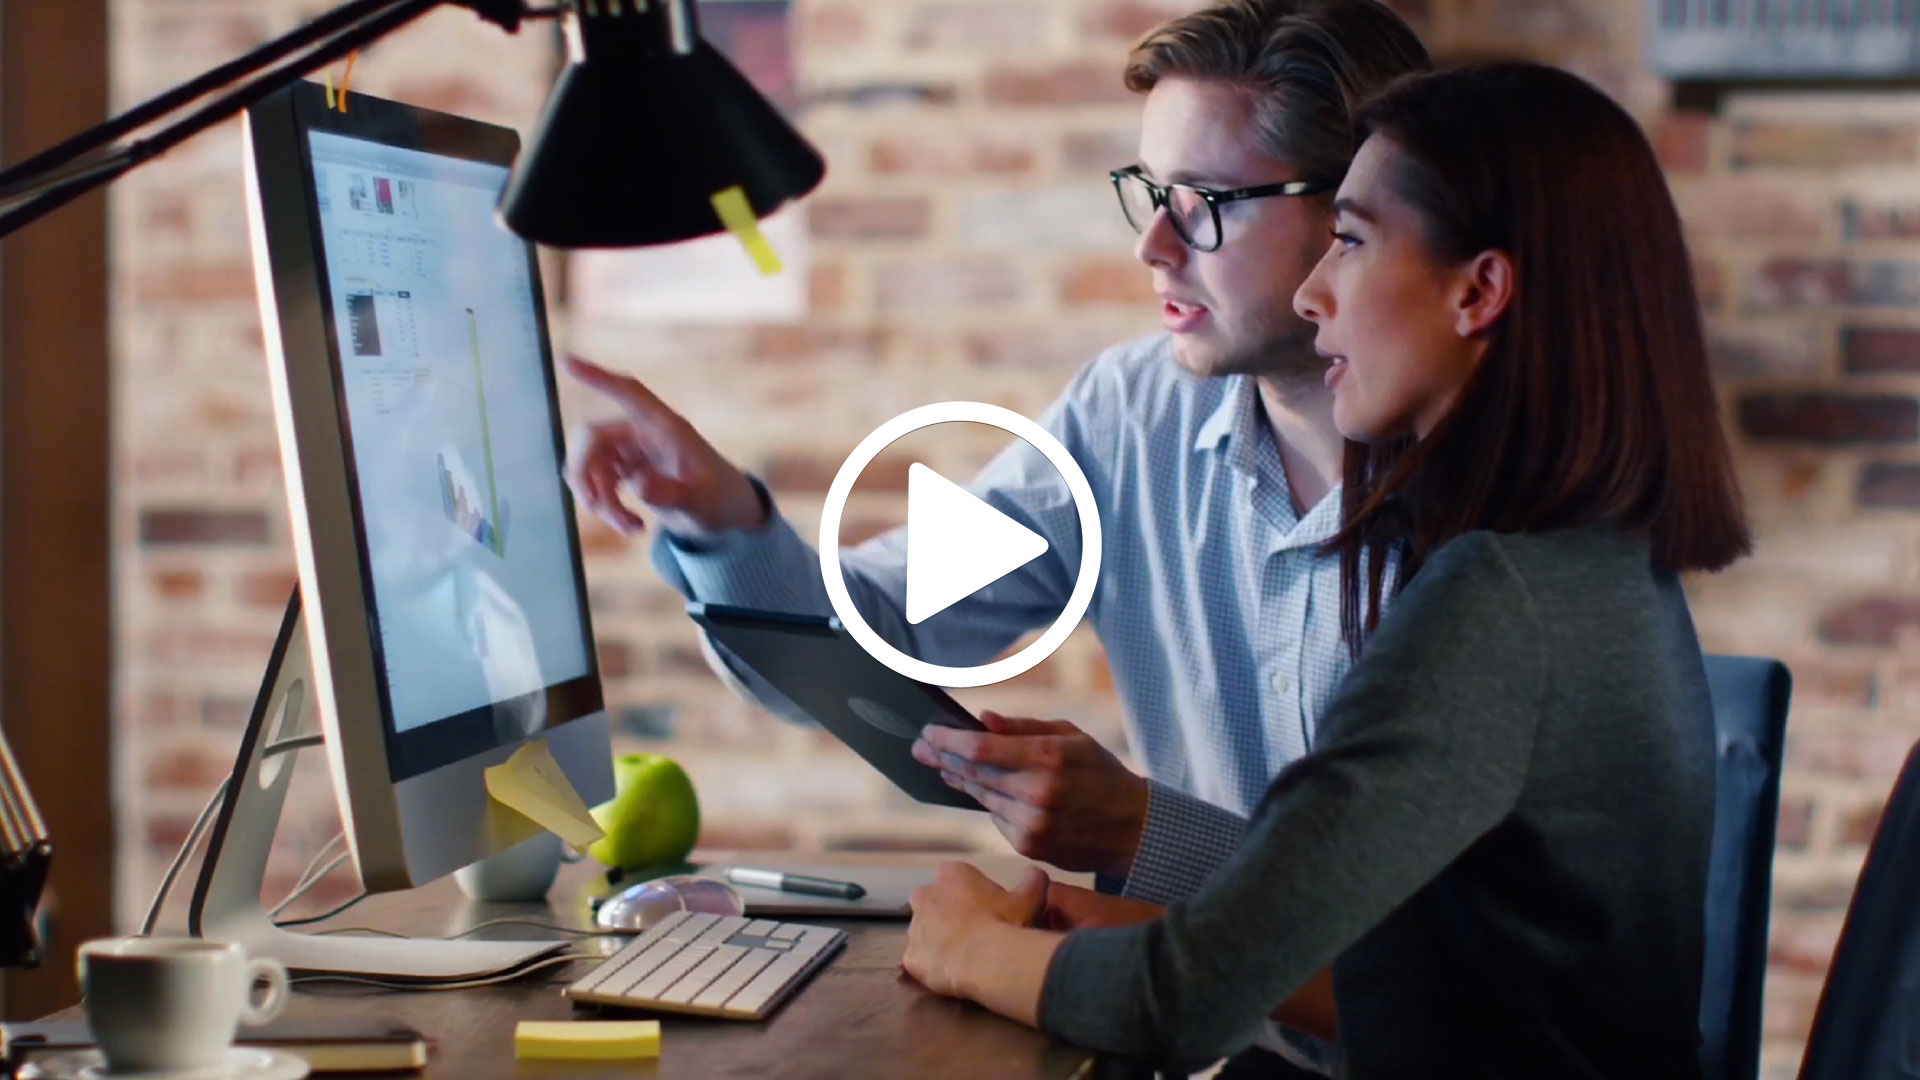 Watch our careers video for available job opening Client Executive in Atlanta, GA